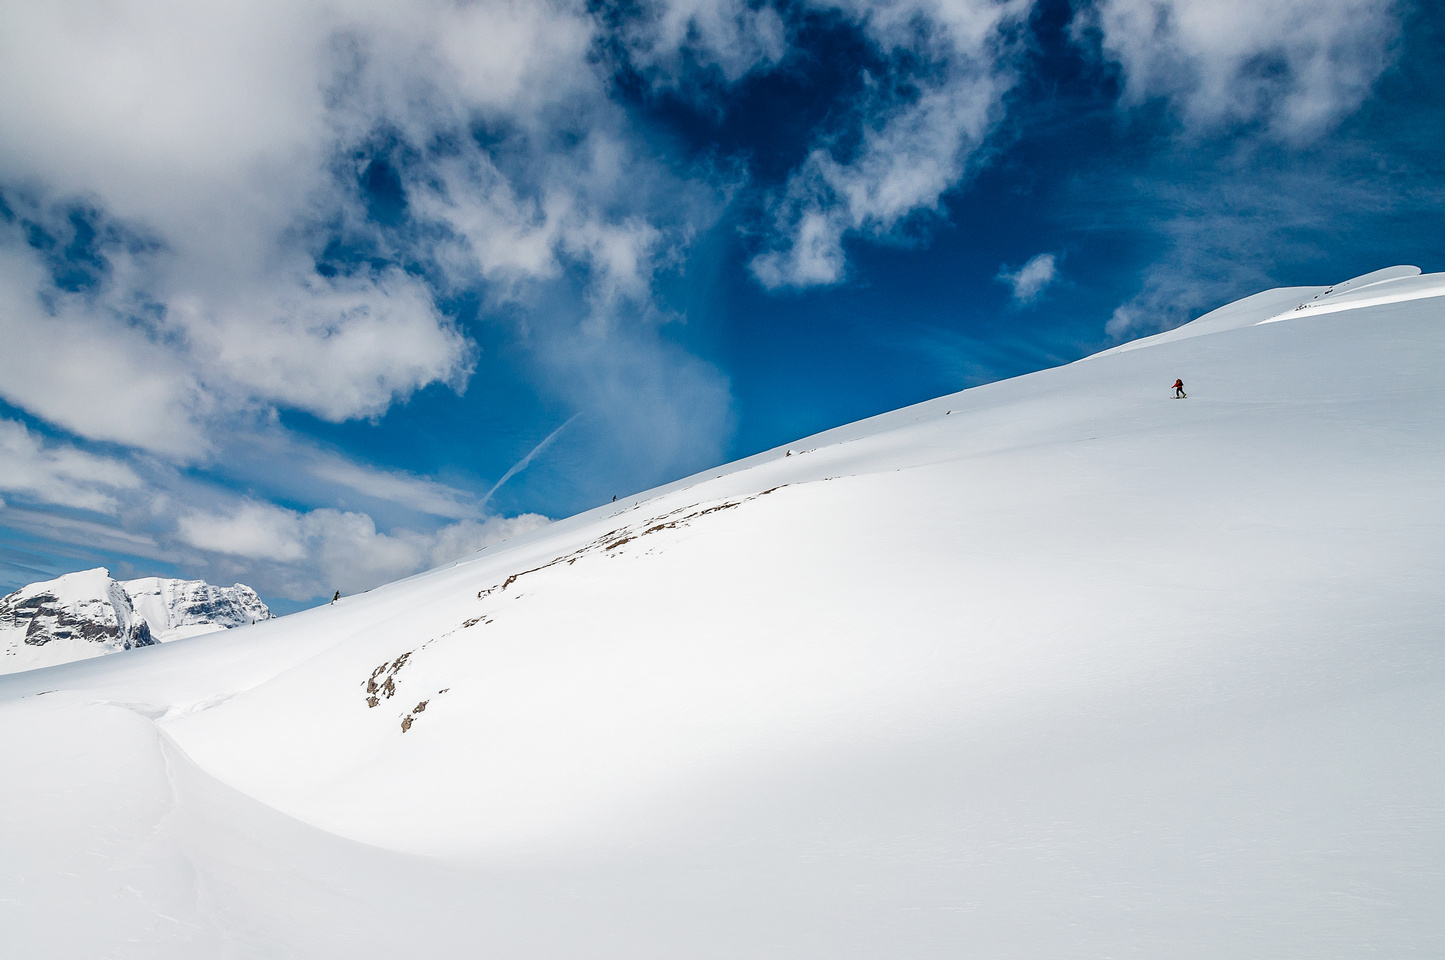 This is big terrain - you really need stability to be on it with this much snow!